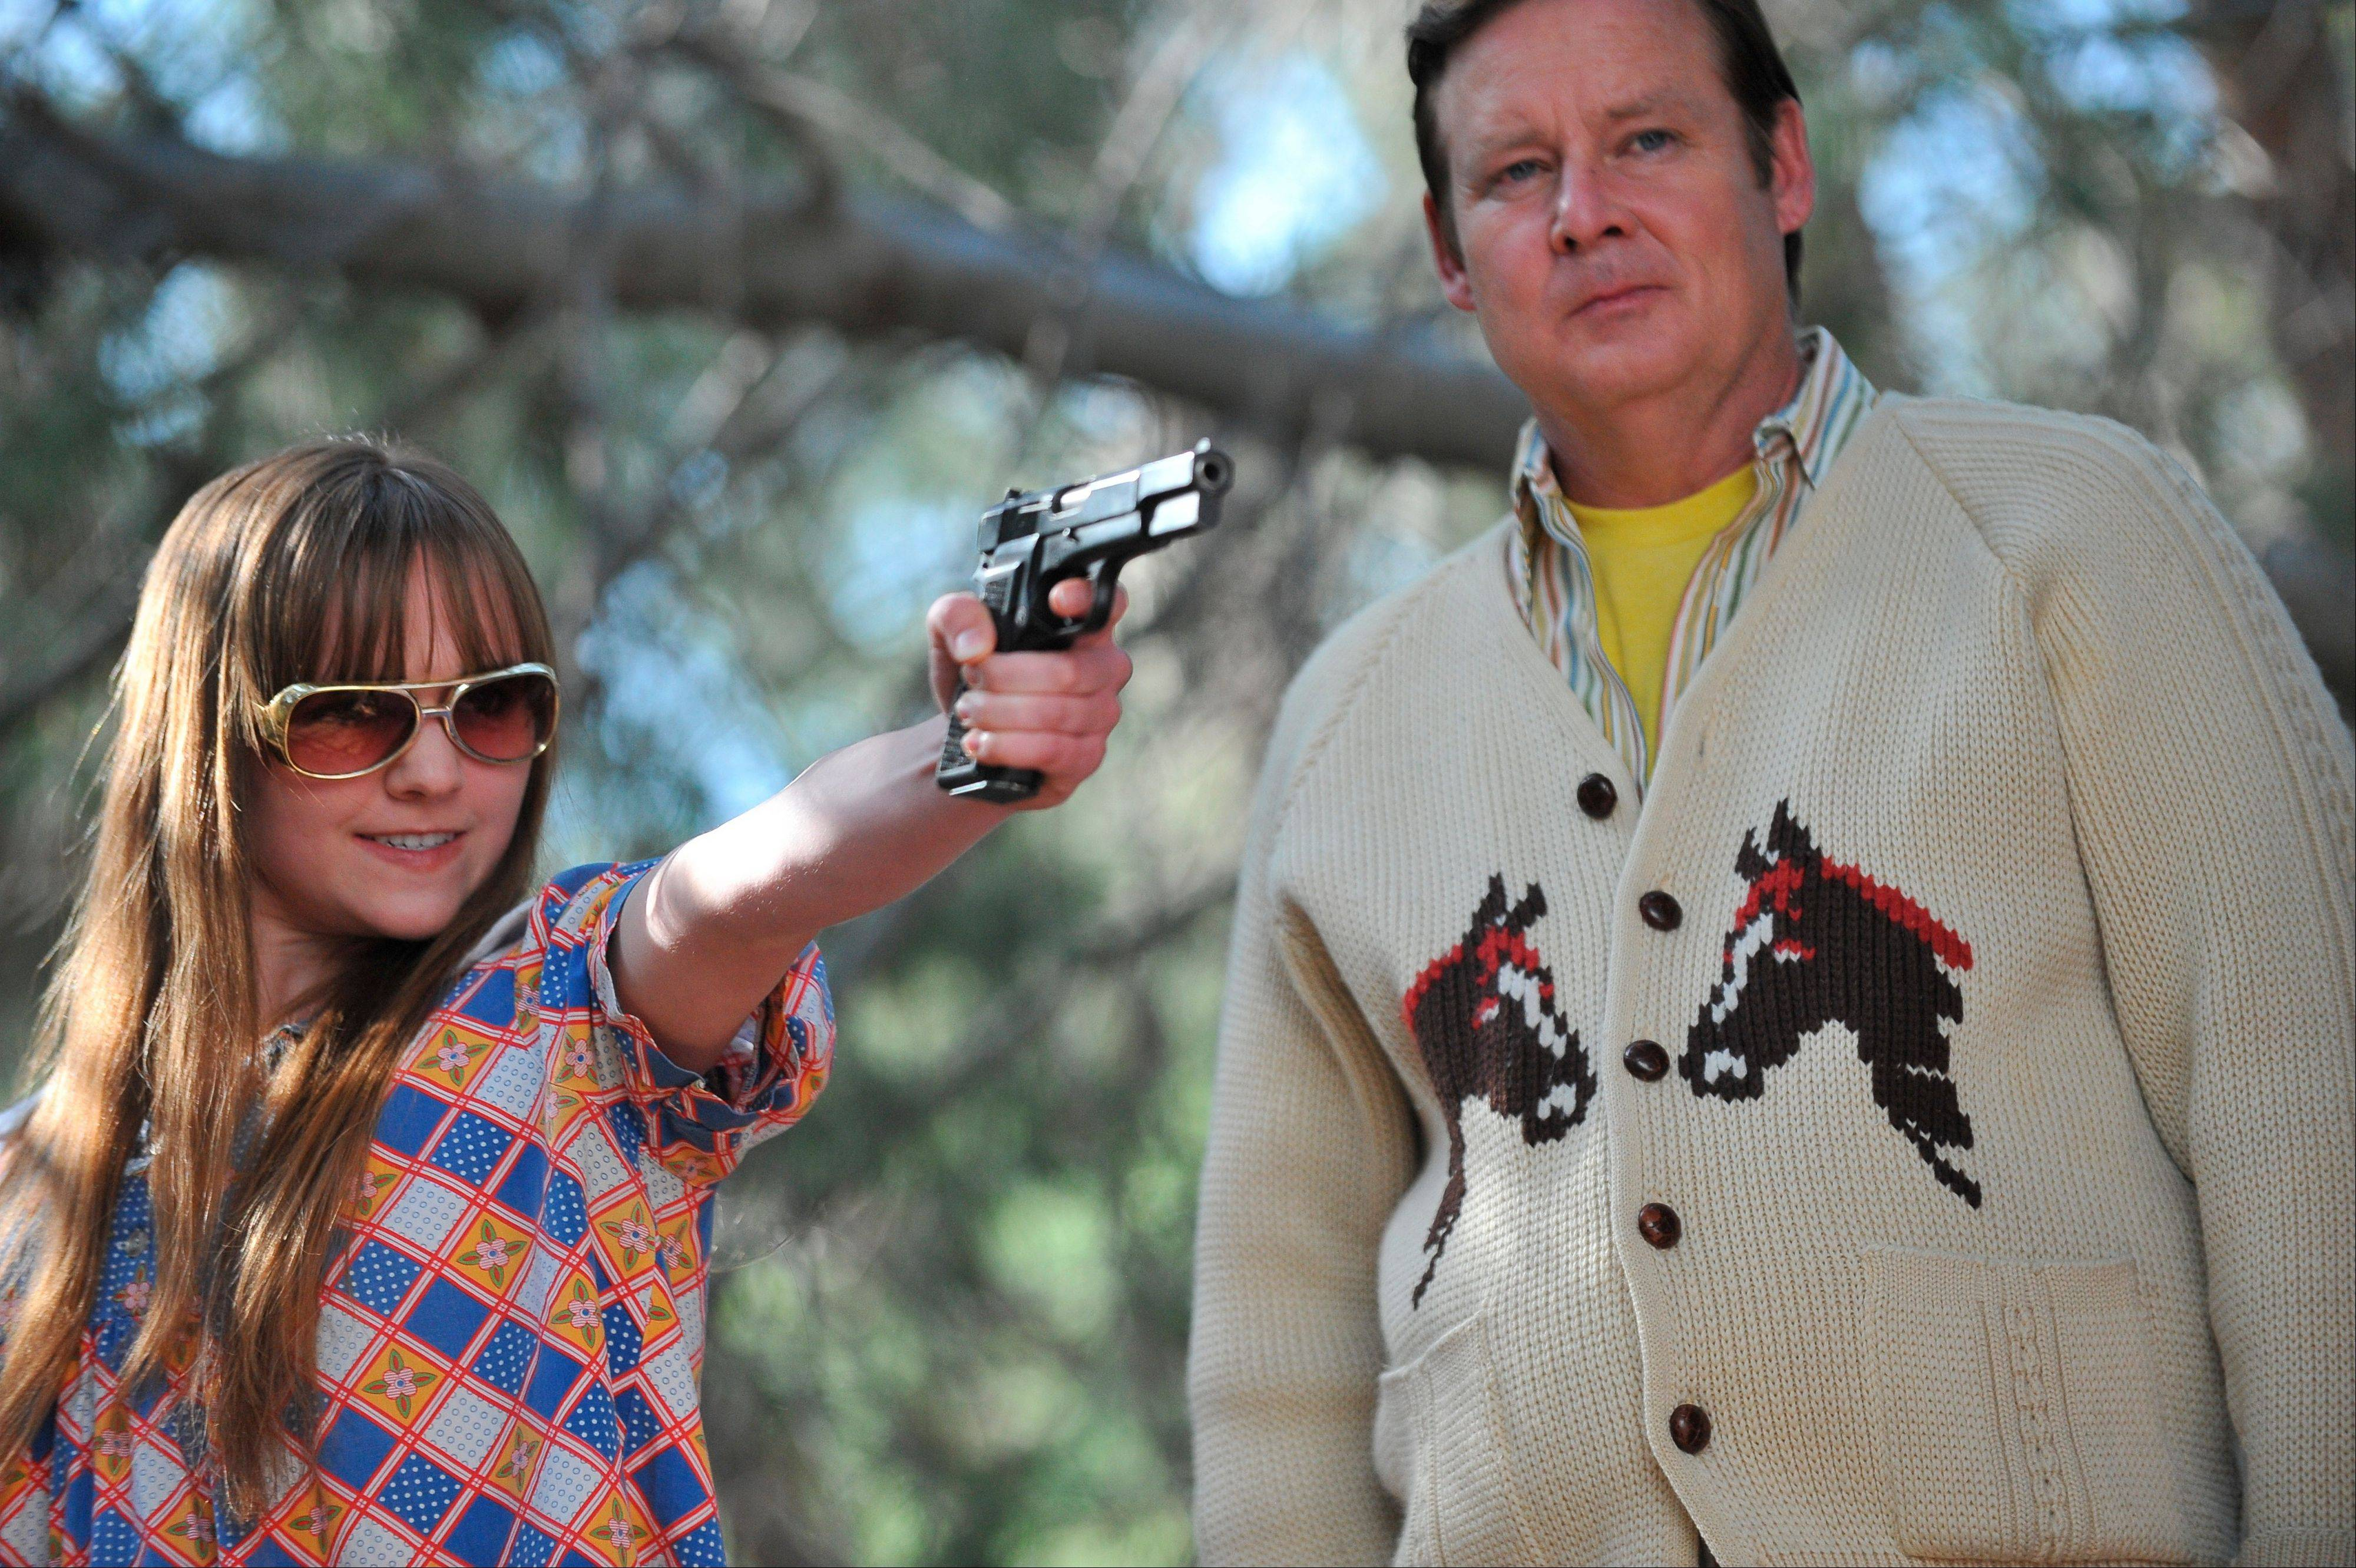 Tara Lynne Barr, left, and Joel Murray from �God Bless America,� Bobcat Goldthwait�s pitch-black comedy about a middle-aged man who recently learned he�s dying of a brain tumor and his perky teenage sidekick who go on a killing spree.